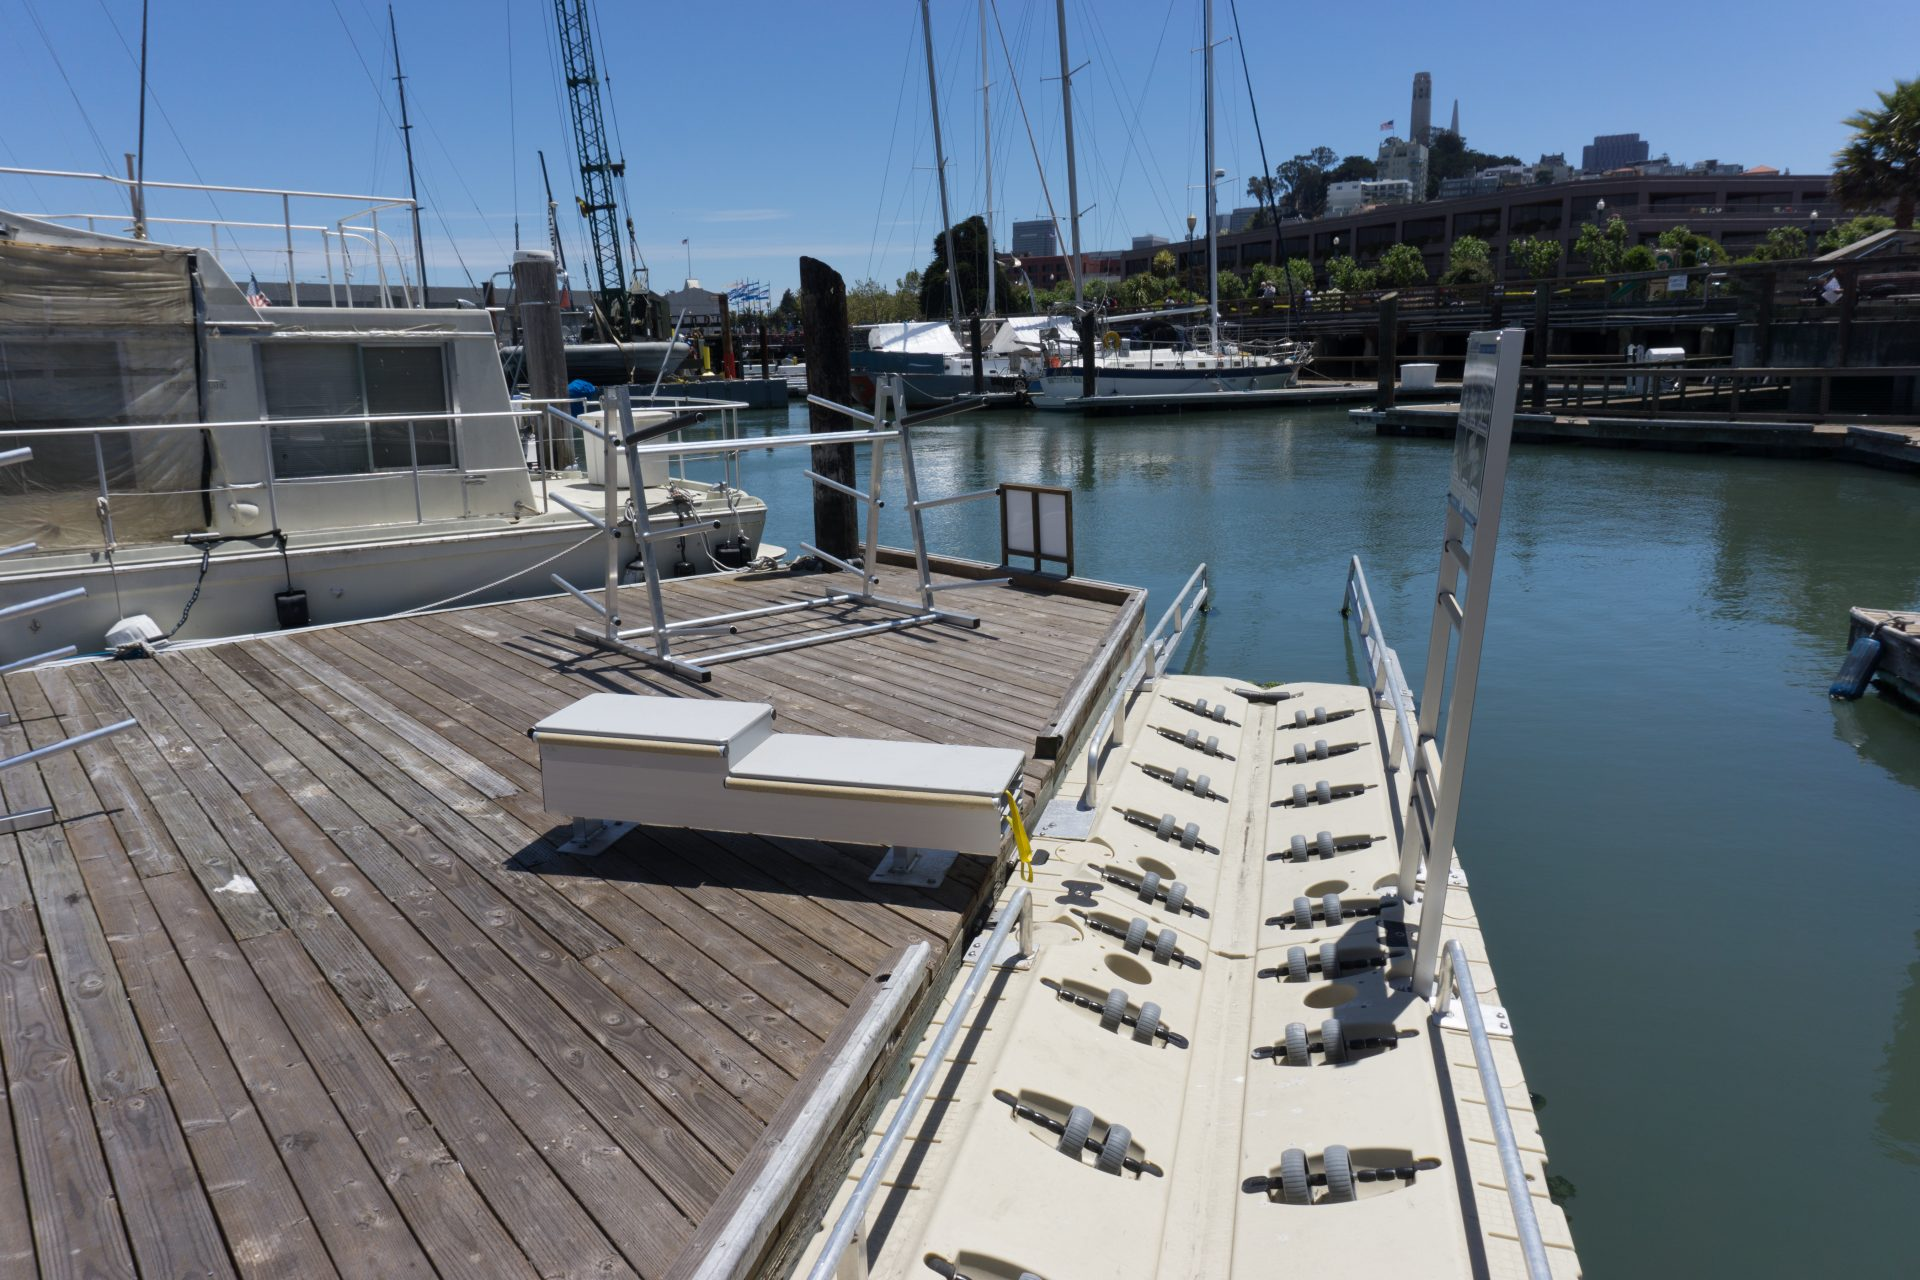 Plastic boat launch with grab bars and rollers